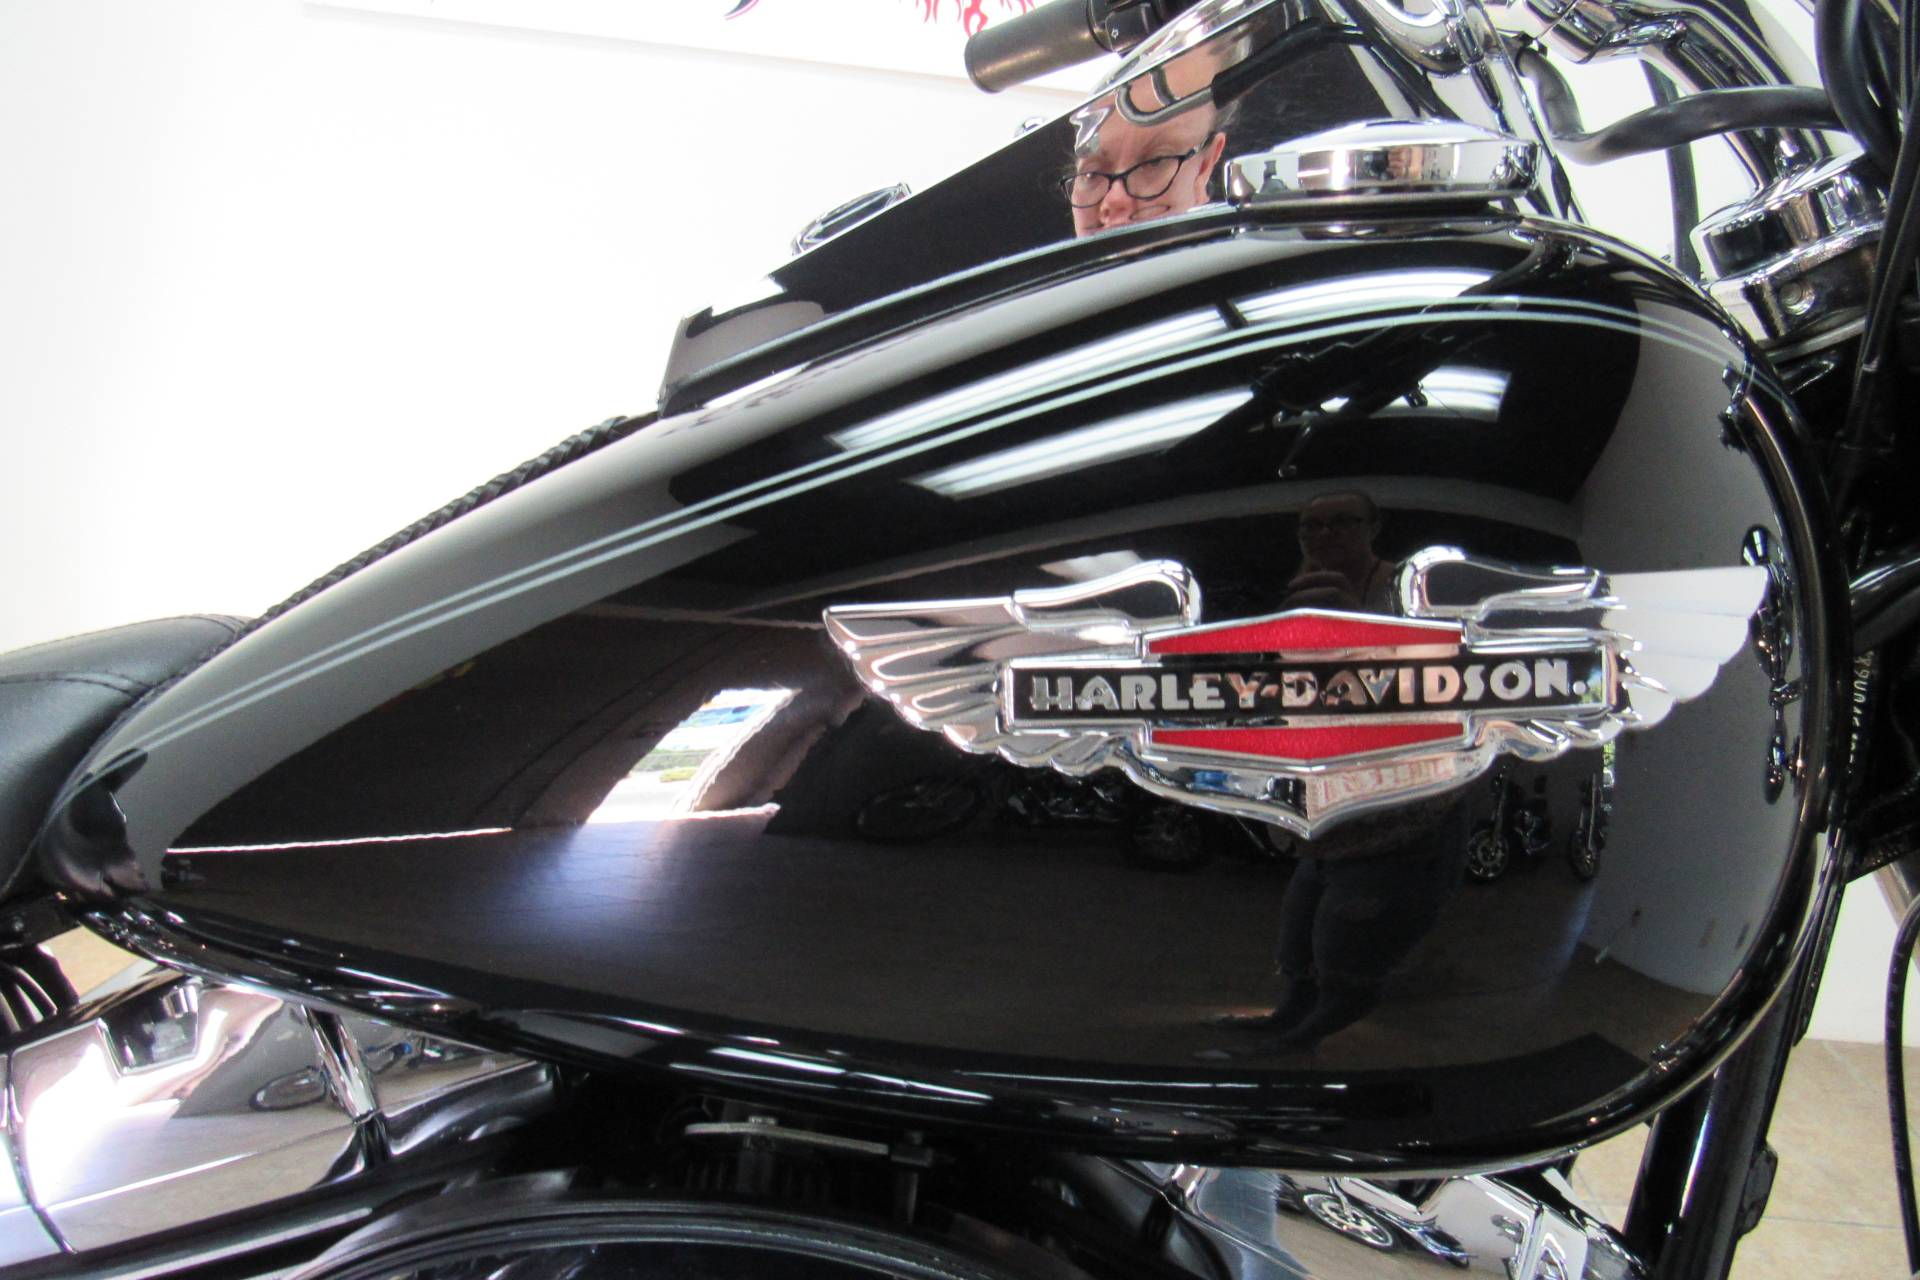 2009 Harley-Davidson Softail Deluxe in Temecula, California - Photo 10